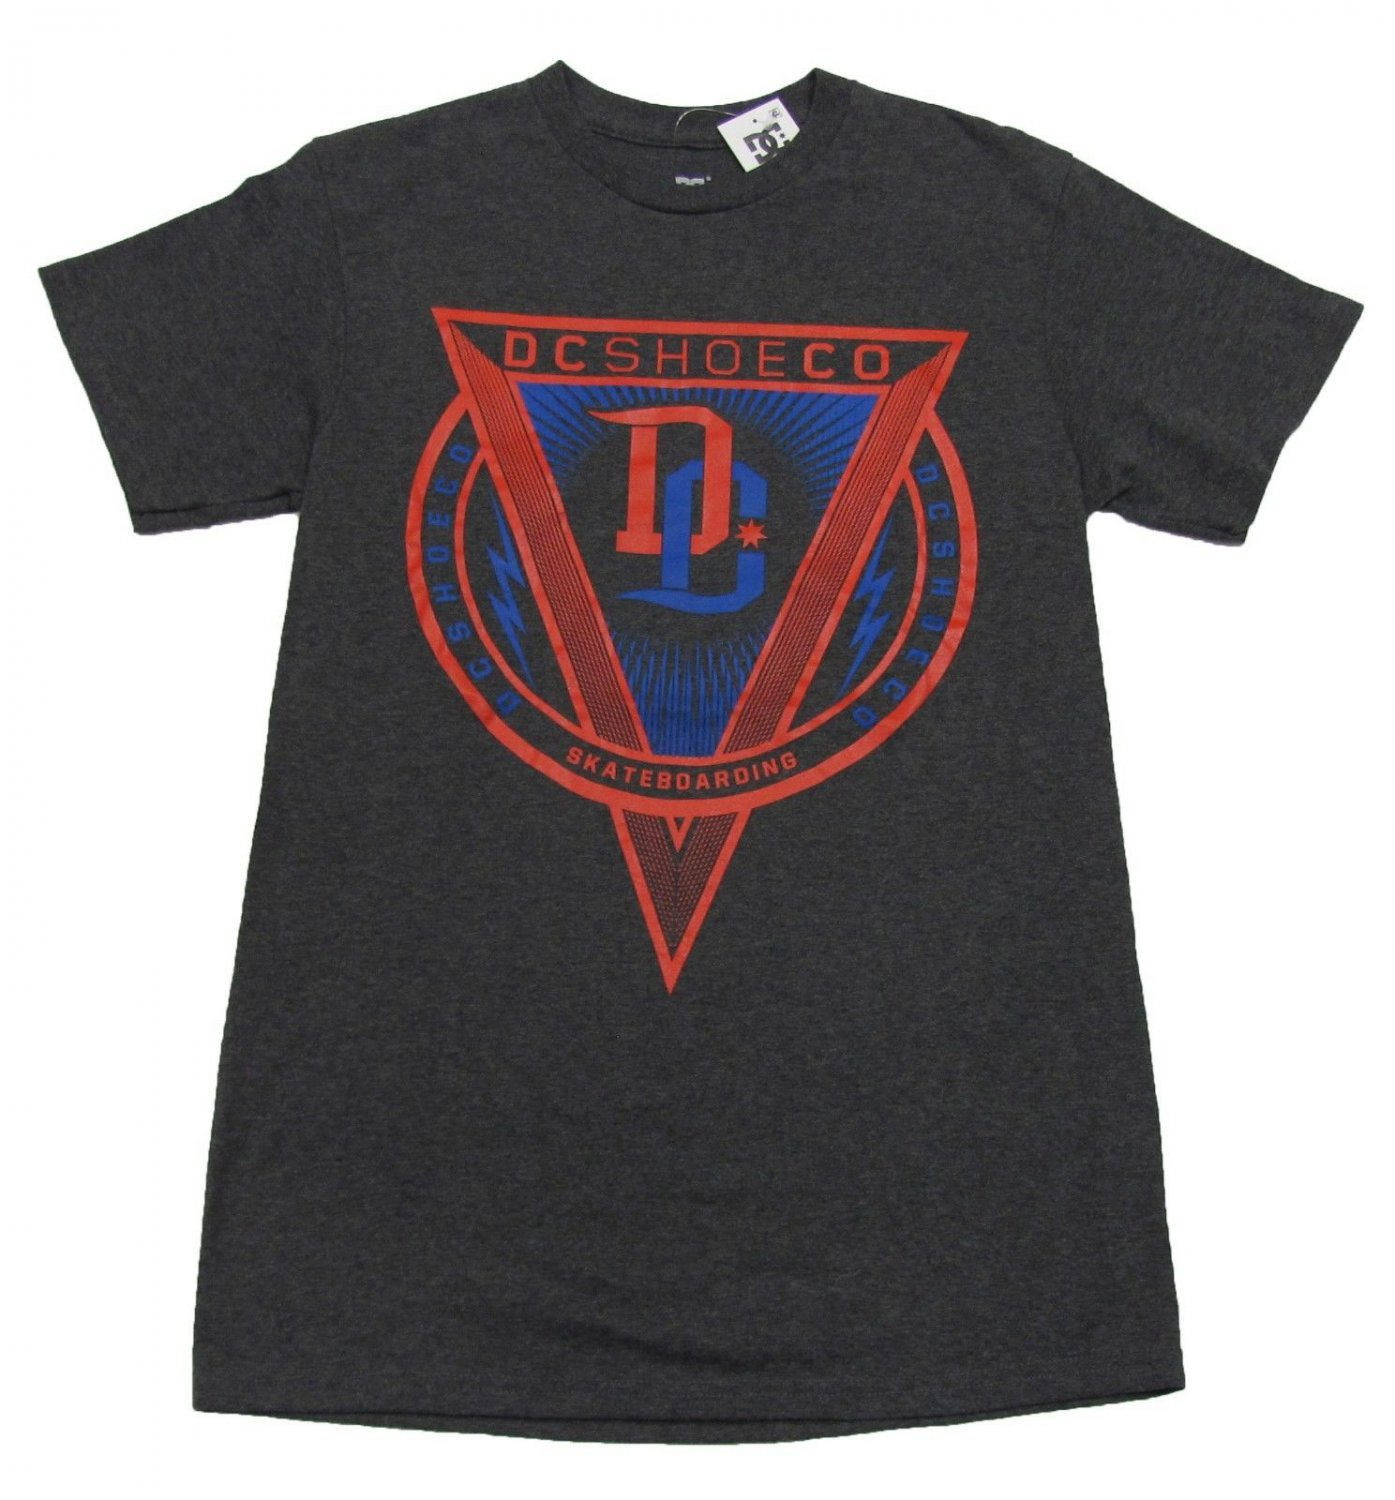 DC Shoes Mens L Triangle Tee Shirt Charcoal Gray Crew T-shirt Large New